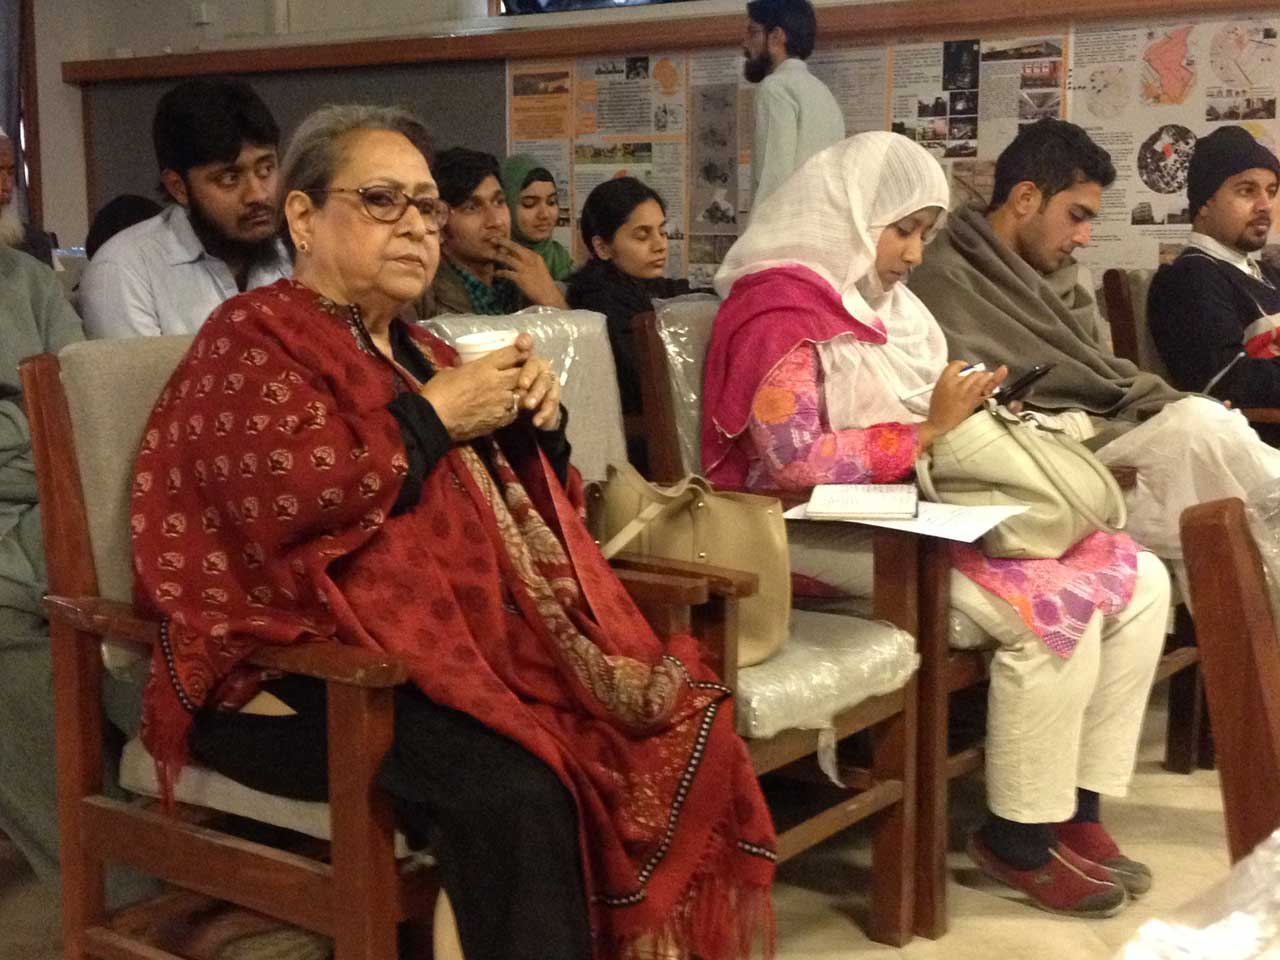 Mrs. Badar Khan is listening the speech by Pervez Said